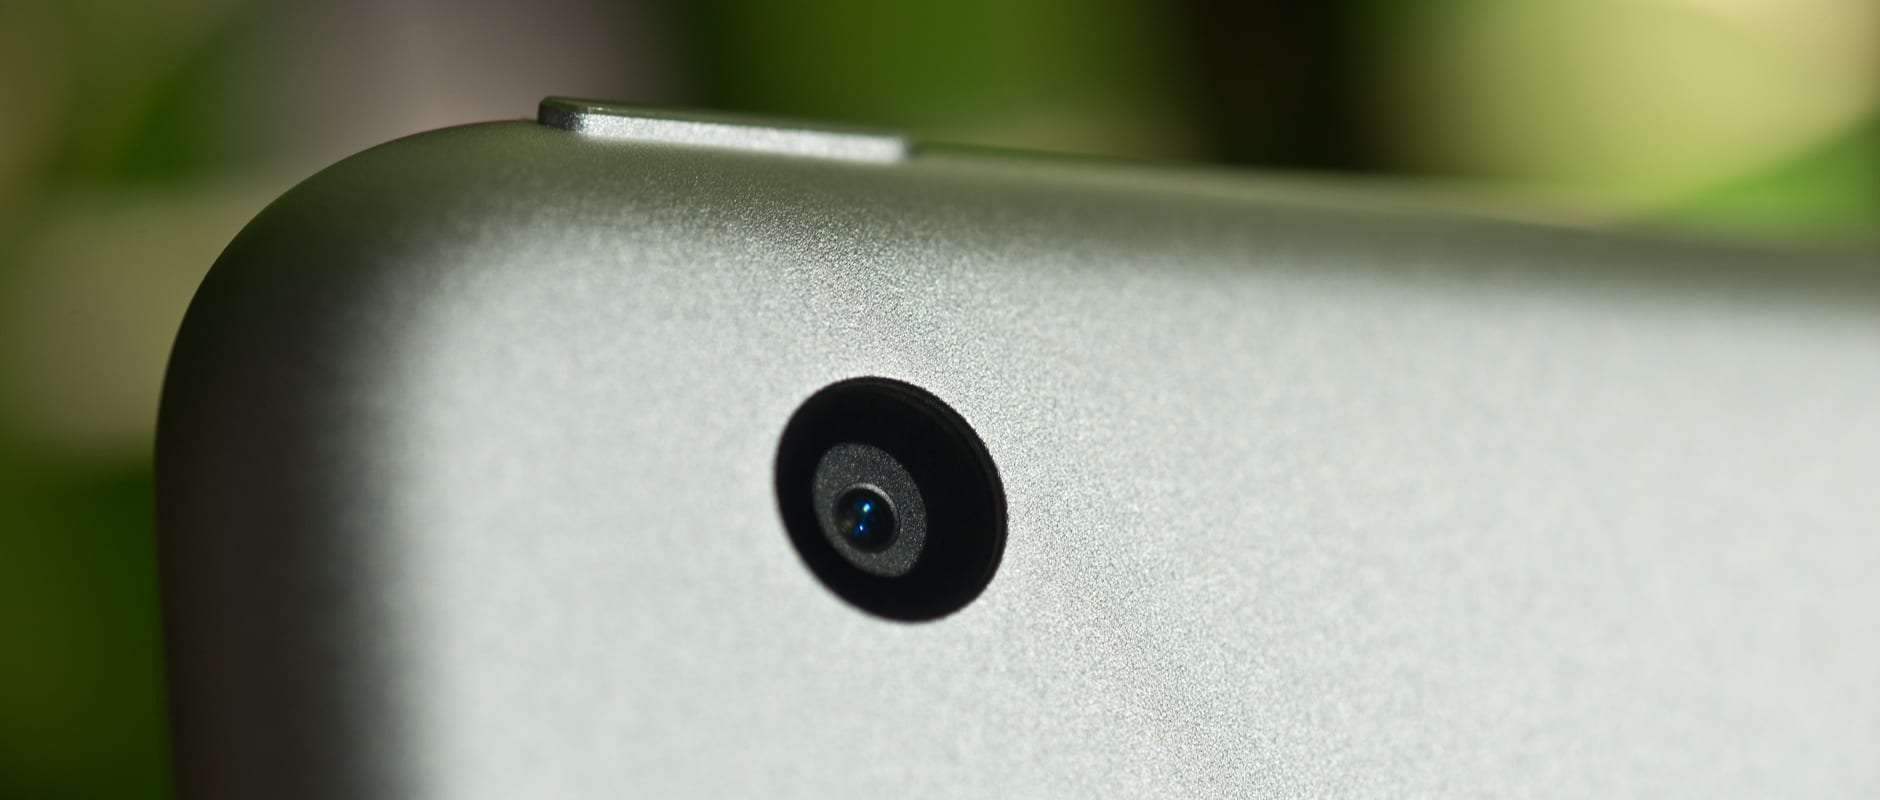 A photo of the Apple iPad mini 3's camera.